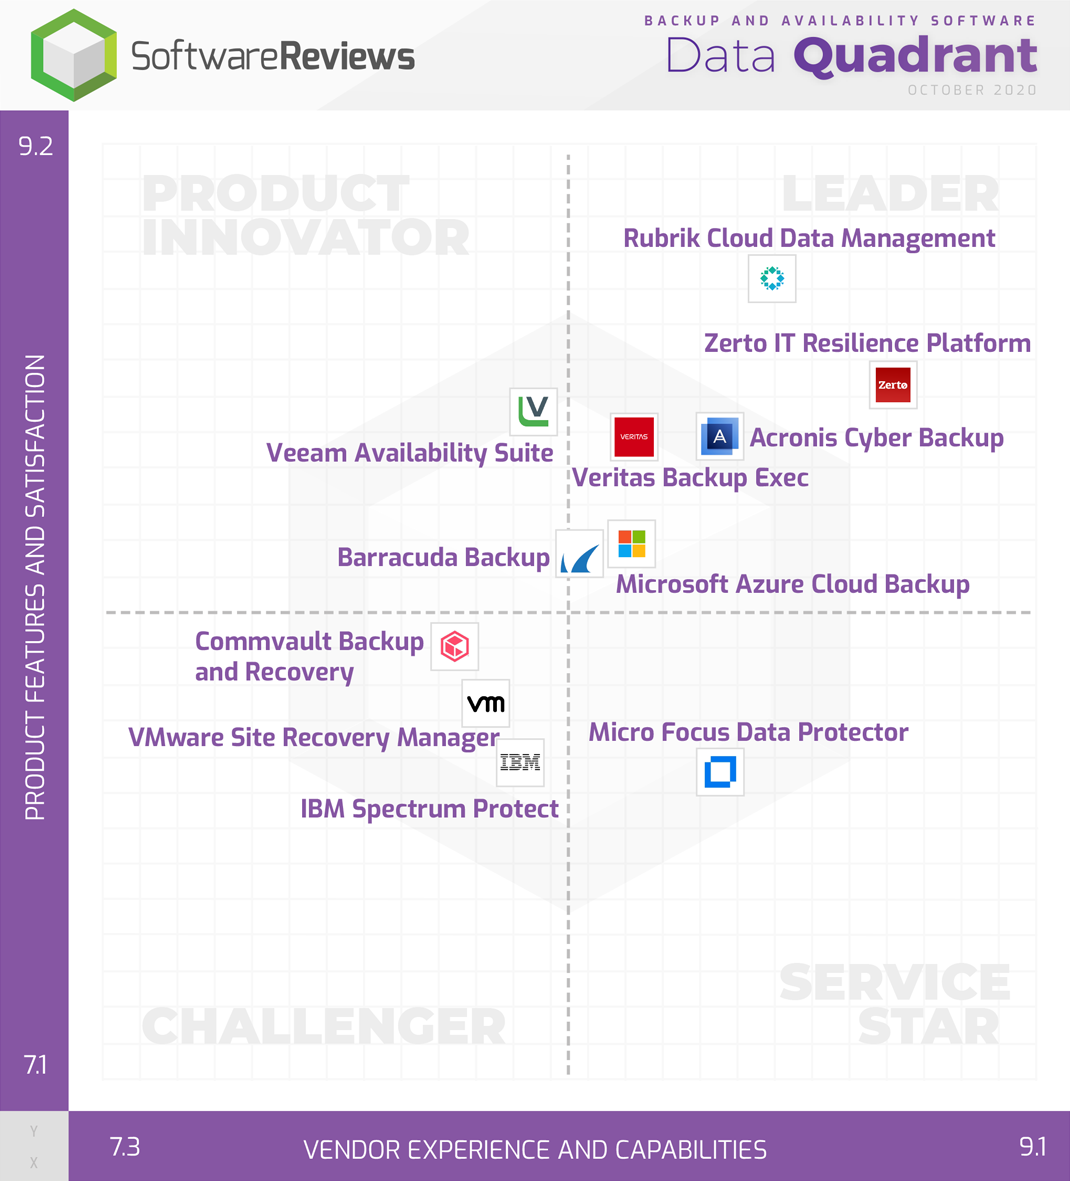 Backup and Availability Software Data Quadrant